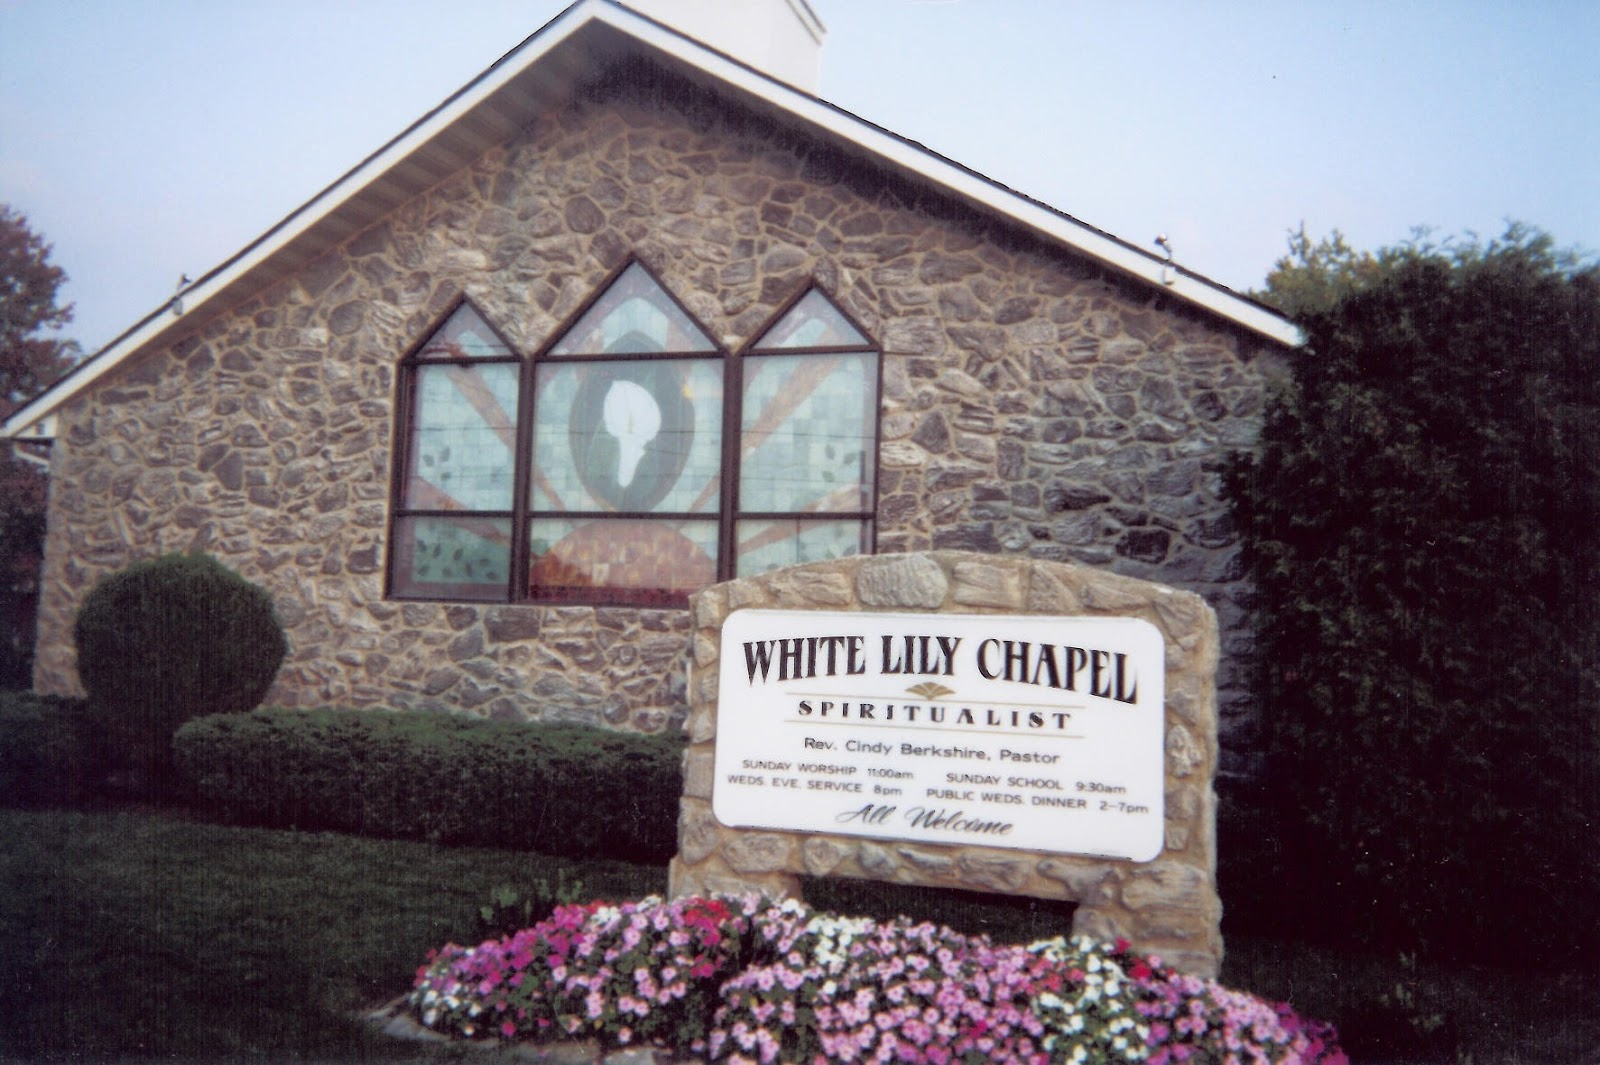 an image of the White Lily Chapel, located in Ashley, Ohio